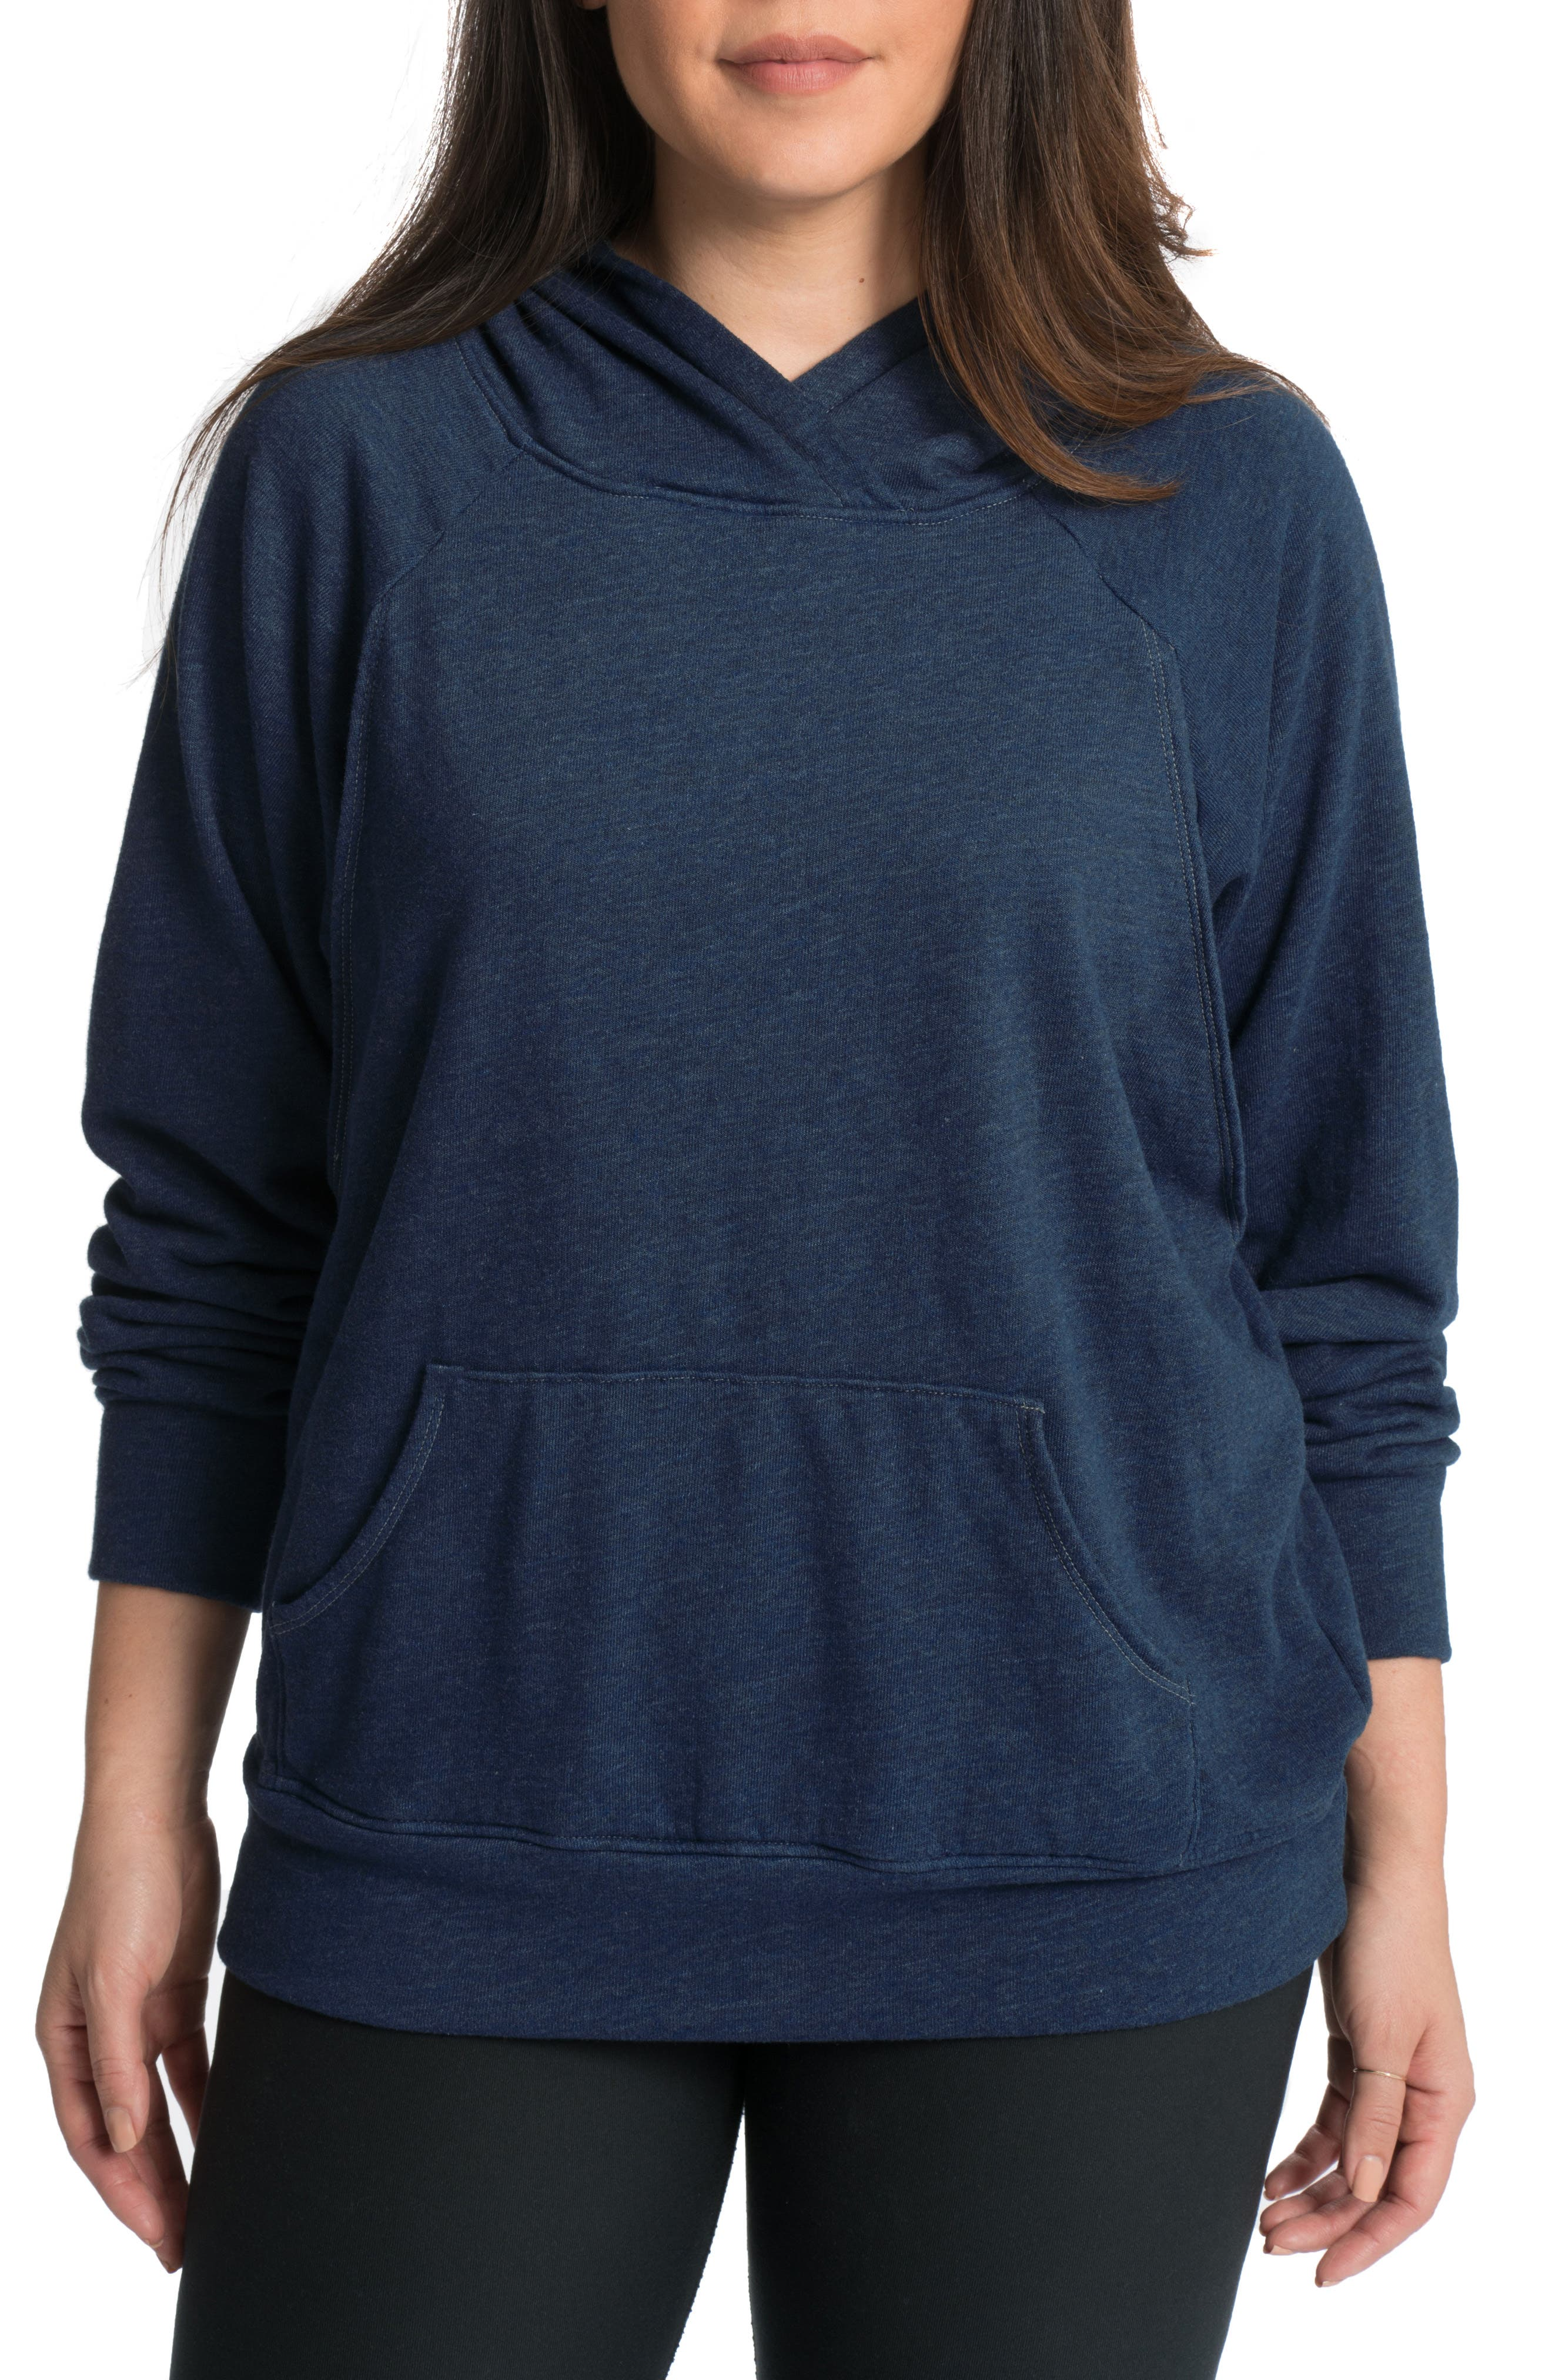 Relaxed Daily Maternity Nursing Hoodie,                         Main,                         color, Navy